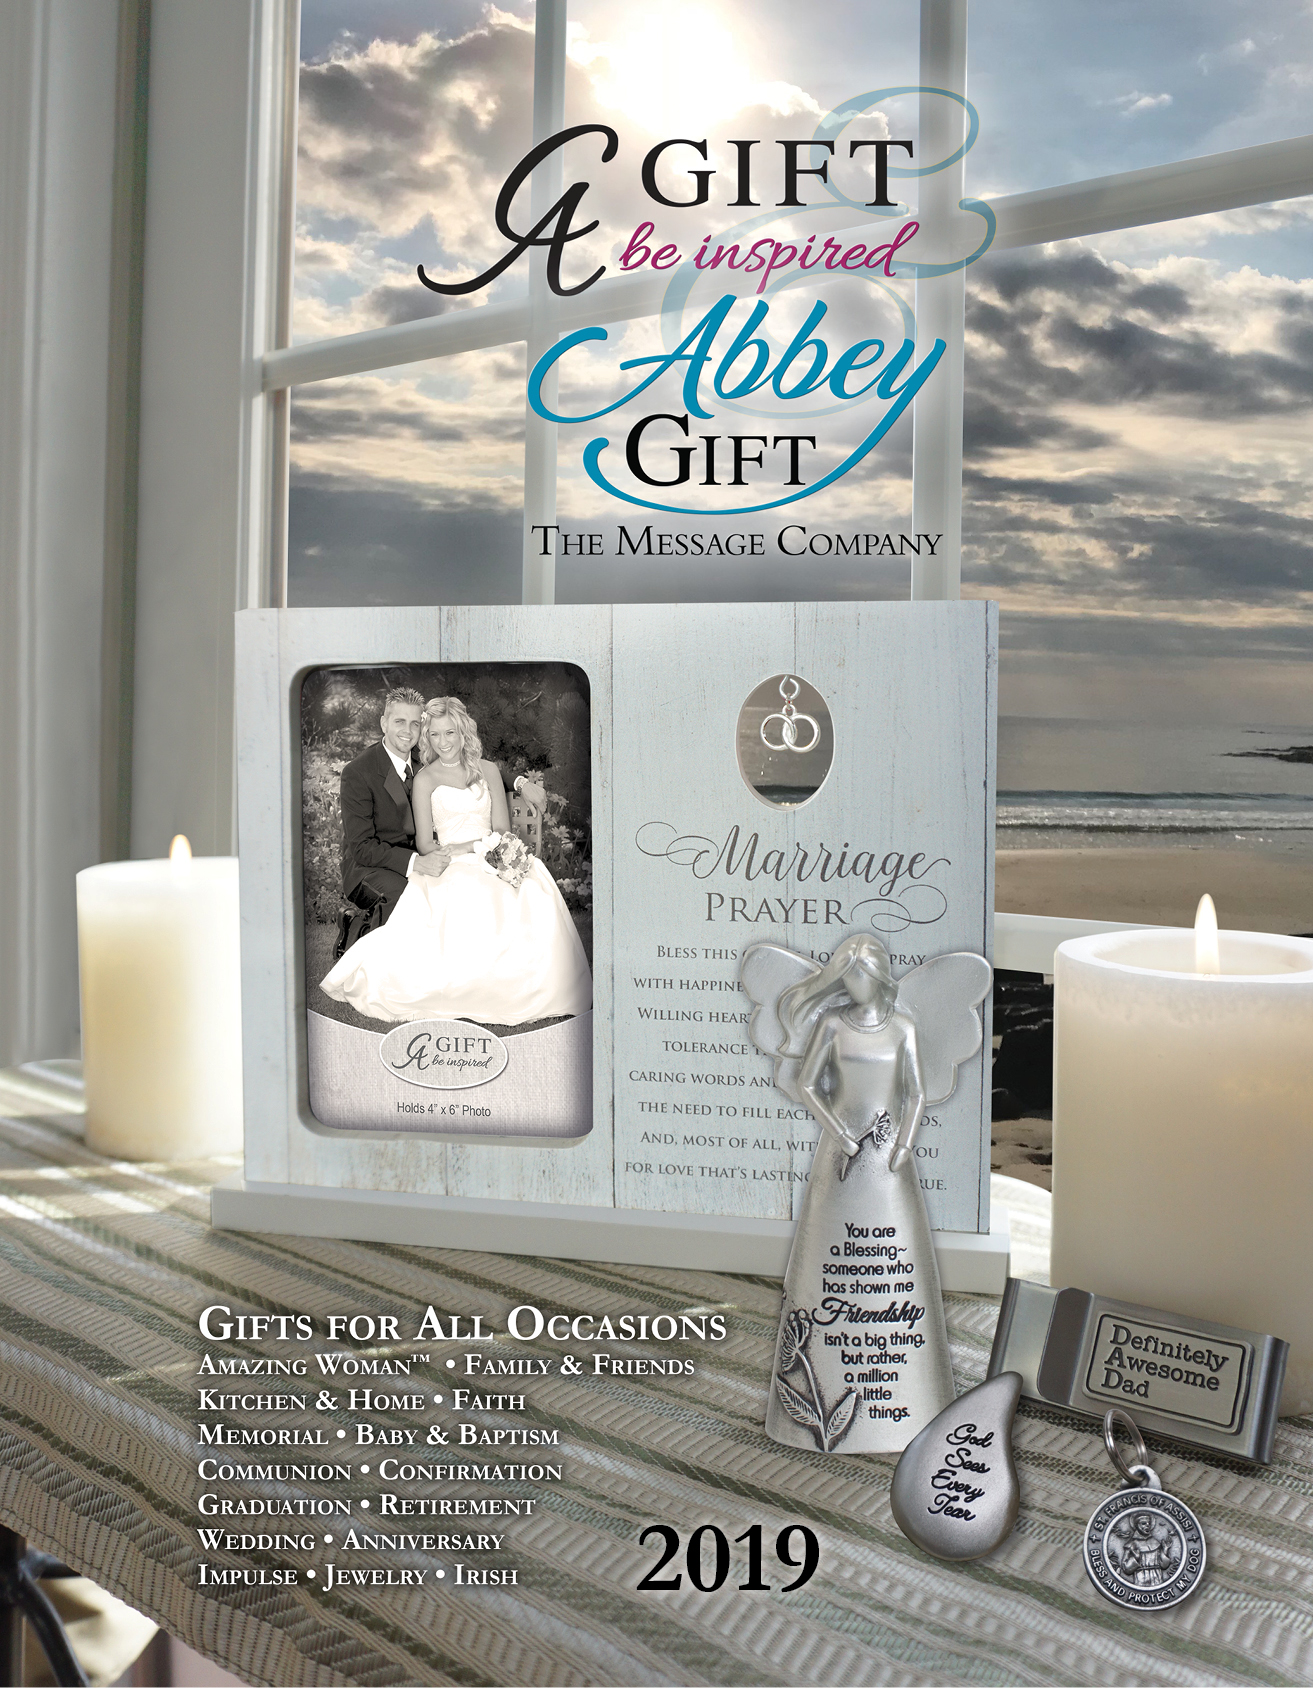 CA & Abbey Gift Pgs